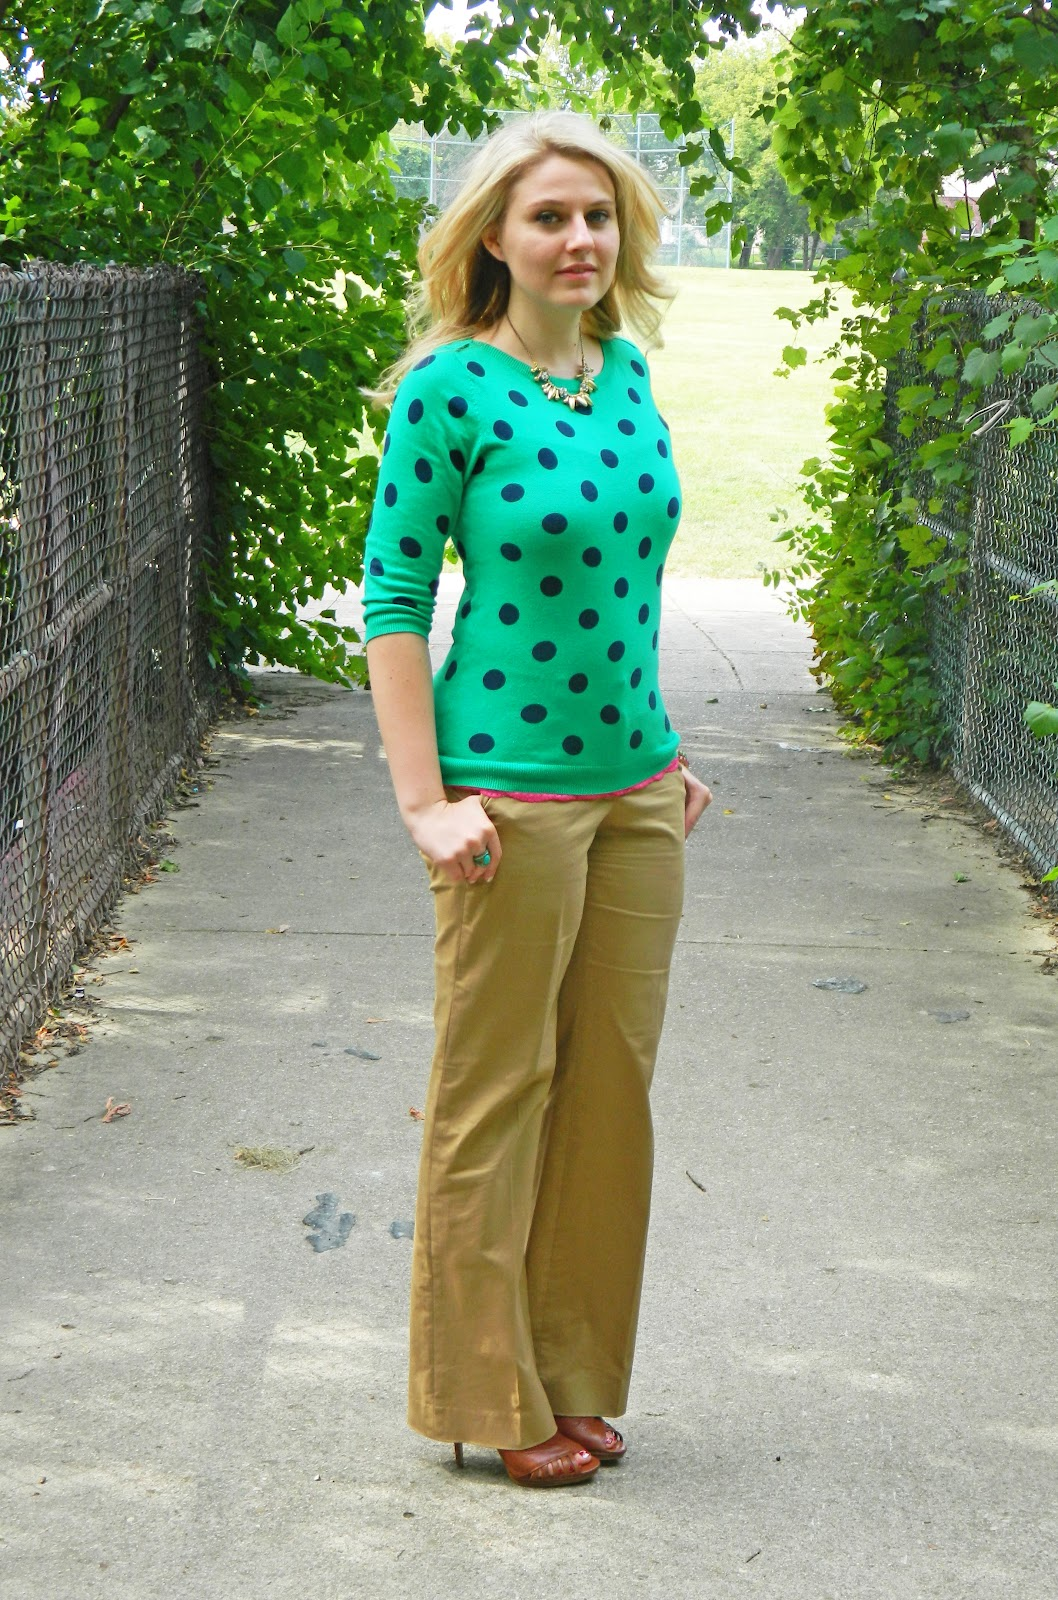 caravan of style: polka dot sweater